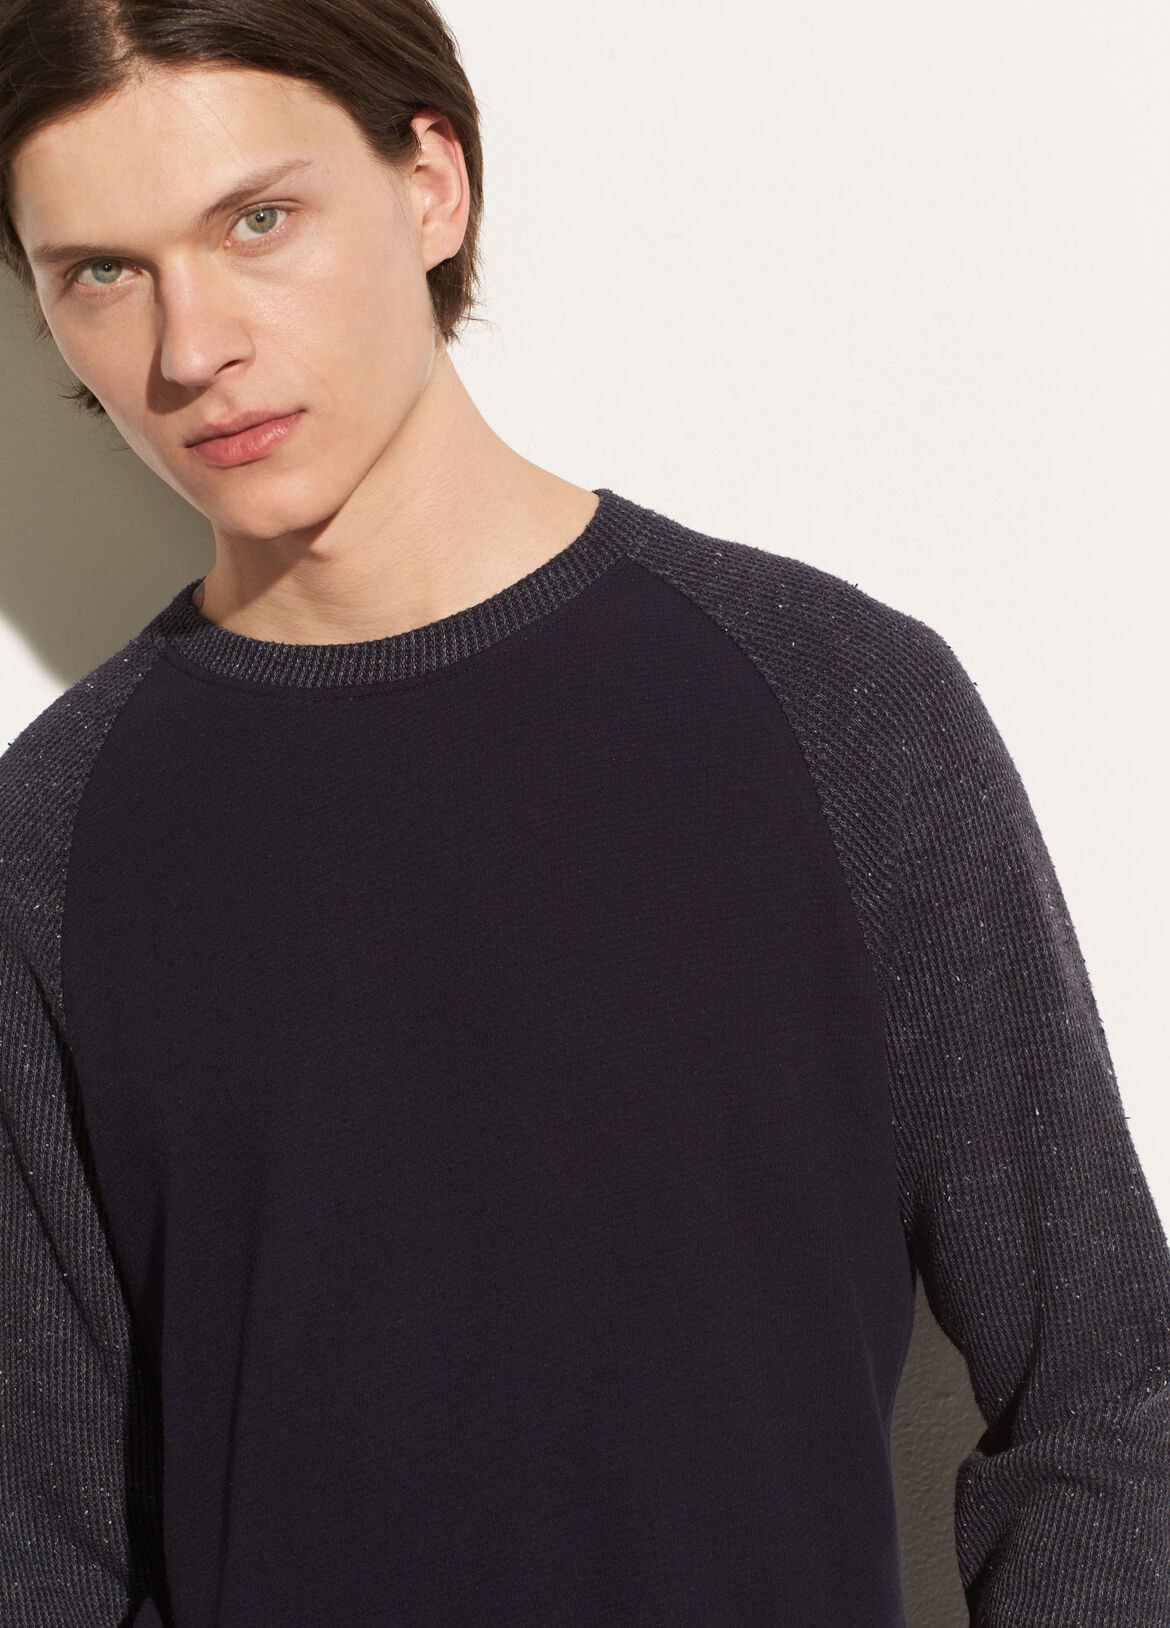 V Neck Sweater T Shirt Underneath